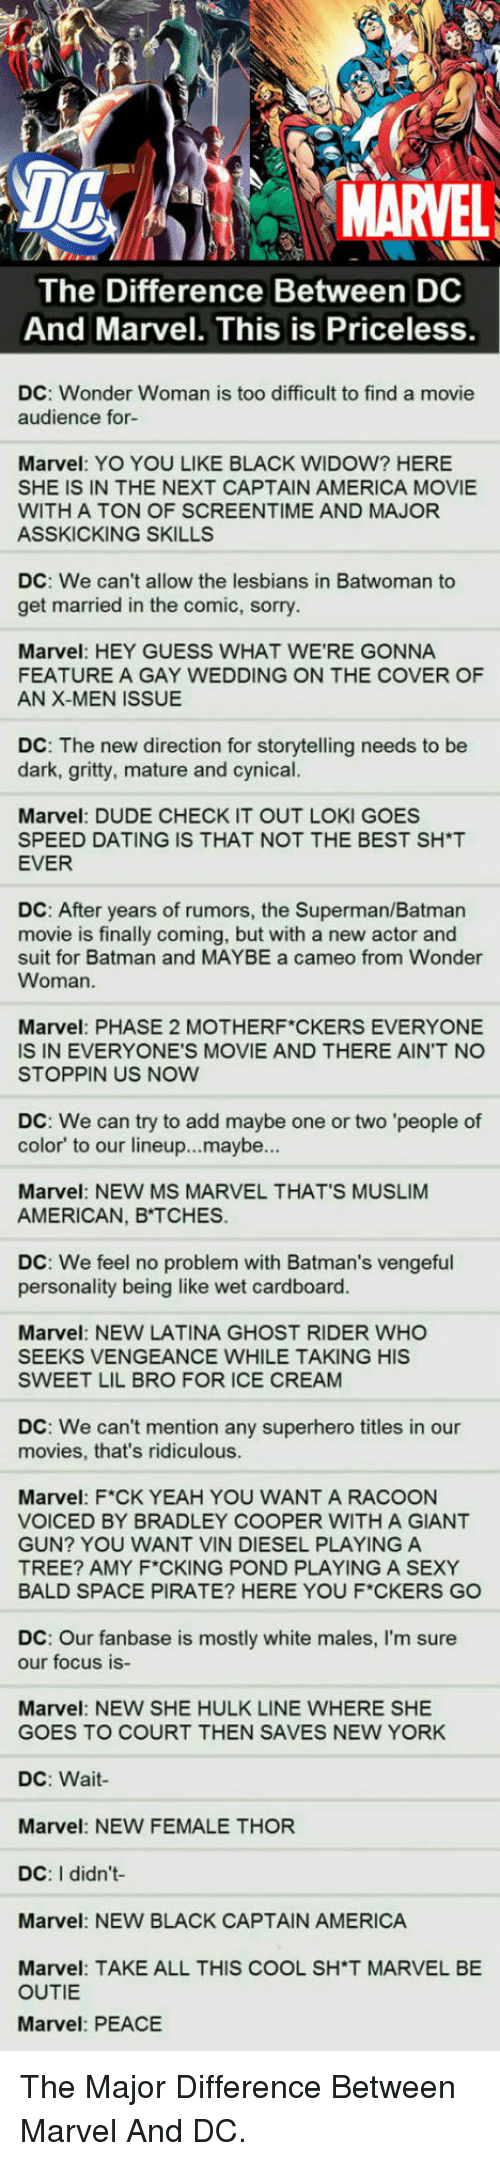 ms marvel: DG  MARVEL  The Difference Between DC  And Marvel. This is Priceless  DC: Wonder Woman is too difficult to find a movie  audience for-  Marvel: YO YOU LIKE BLACK WIDOW? HERE  SHE IS IN THE NEXT CAPTAIN AMERICA MOVIE  WITH A TON OF SCREENTIME AND MAJOR  ASSKICKING SKILLS  DC: We can't allow the lesbians in Batwoman to  get married in the comic, sorry  Marvel: HEY GUESS WHAT WE'RE GONNA  FEATURE A GAY WEDDING ON THE COVER OF  AN X-MEN ISSUE  DC: The new direction for storytelling needs to be  dark, gritty, mature and cynical.  ES  Marvel: DUDE CHECK IT OUT LOKI GO  SPEED DATING IS THAT NOT THE BEST SH*T  EVER  DC: After years of rumors, the Superman/Batman  movie is finally coming, but with a new actor and  suit for Batman and MAYBE a cameo from Wonder  Woman.  Marvel: PHASE 2 MOTHERF CKERS EVERYONE  IS IN EVERYONE'S MOVIE AND THERE AIN'T NO  STOPPIN US NOW  DC: We can try to add maybe one or two 'people of  color' to our lineup...maybe...  Marvel: NEW MS MARVEL THAT'S MUSLIM  AMERICAN, B TCHES.  DC: We feel no problem with Batman's vengeful  personality being like wet cardboard.  Marvel: NEW LATINA GHOST RIDER WHO  SEEKS VENGEANCE WHILE TAKING HIS  SWEET LIL BRO FOR ICE CREAM  DC: We can't mention any superhero titles in our  movies, that's ridiculous  Marvel: F*CK YEAH YOU WANT A RACOON  VOICED BY BRADLEY COOPER WITH A GIANT  GUN? YOU WANT VIN DIESEL PLAYING A  TREE? AMY F CKING POND PLAYING A SEXY  BALD SPACE PIRATE? HERE YOU F*CKERS GO  DC: Our fanbase is mostly white males, I'm sure  our focus is-  Marvel: NEW SHE HULK LINE WHERE SHE  GOES TO COURT THEN SAVES NEW YORK  DC: Wait  Marvel: NEW FEMALE THOR  DC: I didn't  Marvel: NEW BLACK CAPTAIN AMERICA  Marvel: TAKE ALL THIS COOL SH'T MARVEL BE  OUTIE  Marvel: PEACE <p>The Major Difference Between Marvel And DC.</p>